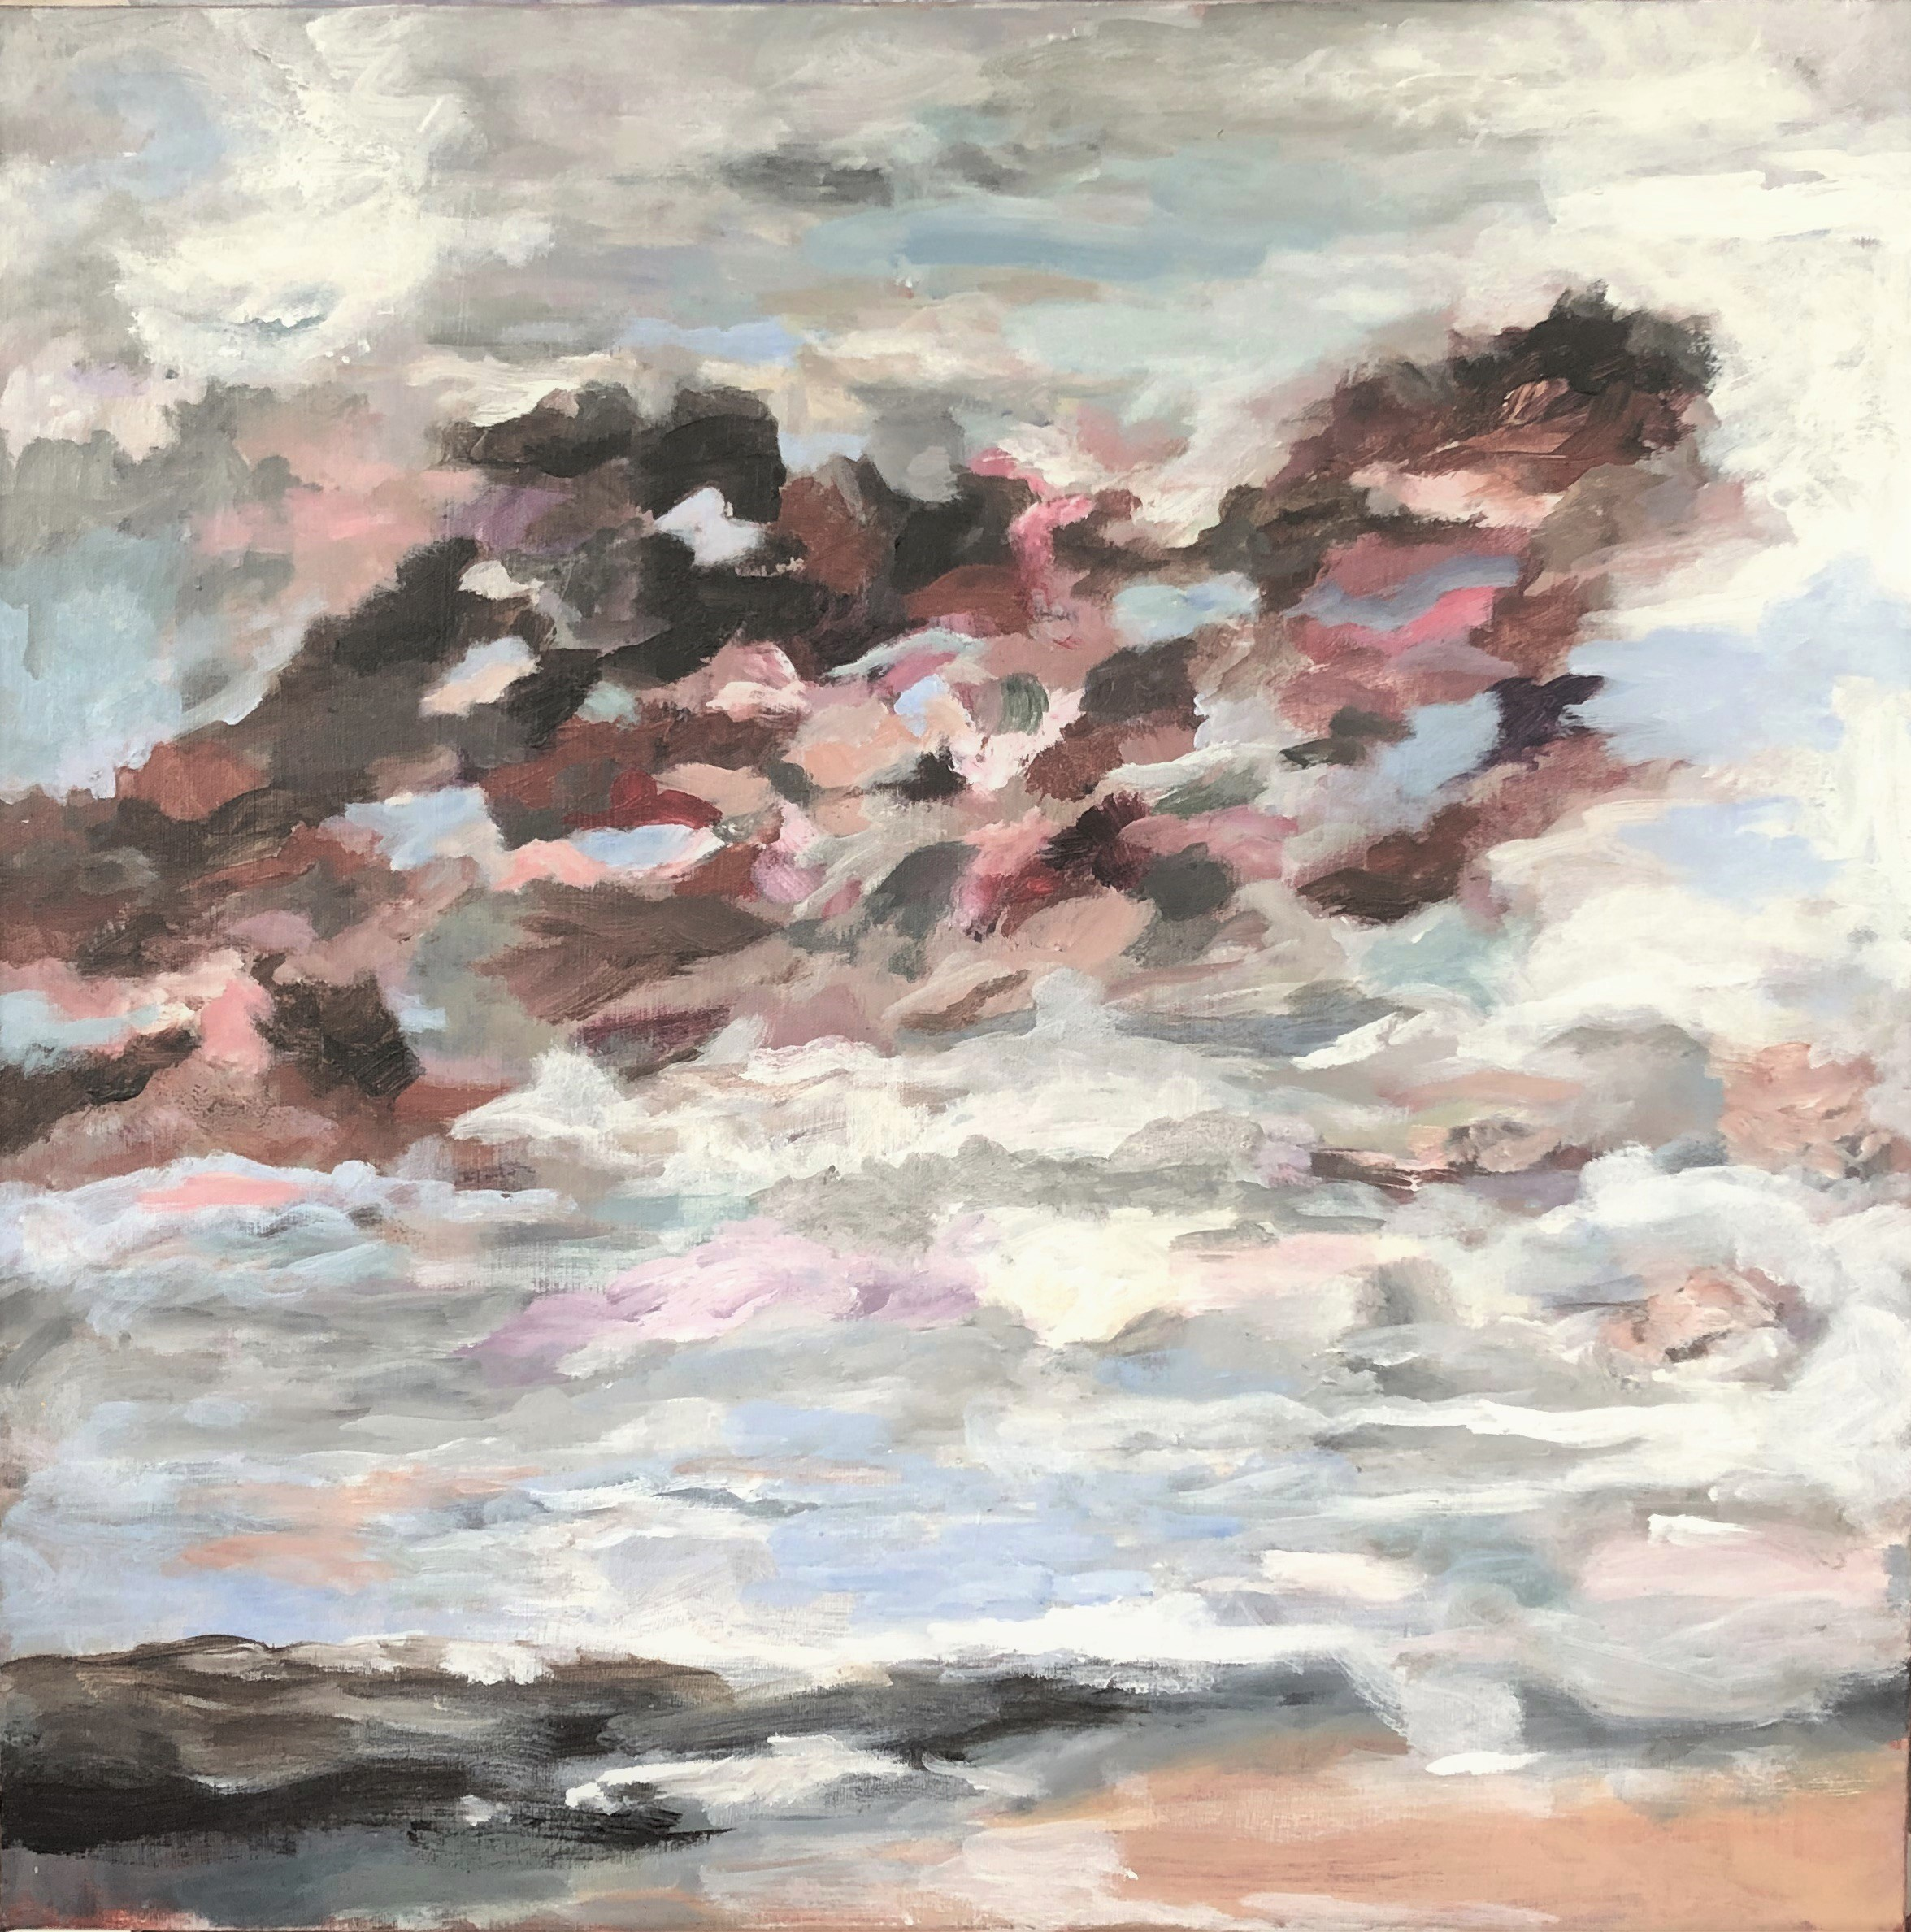 passing clouds, 60 x 60, 2019